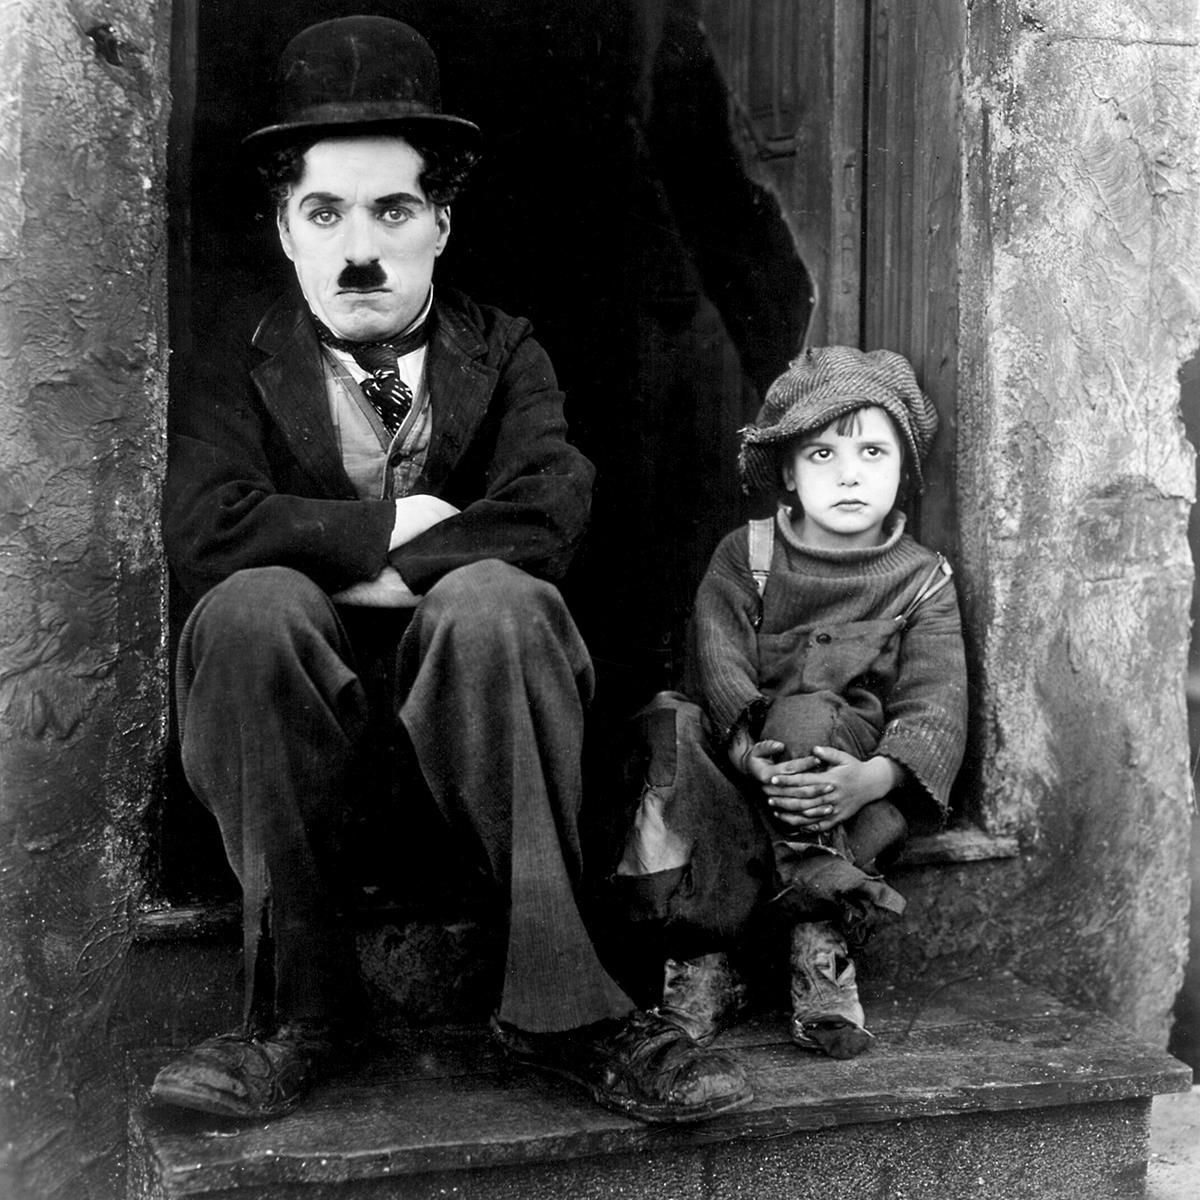 a biography of charles spencer chaplin the english comic actor See more of charliechaplin on facebook  sir charles spencer charlie chaplin, kbe  was an english comic actor,.